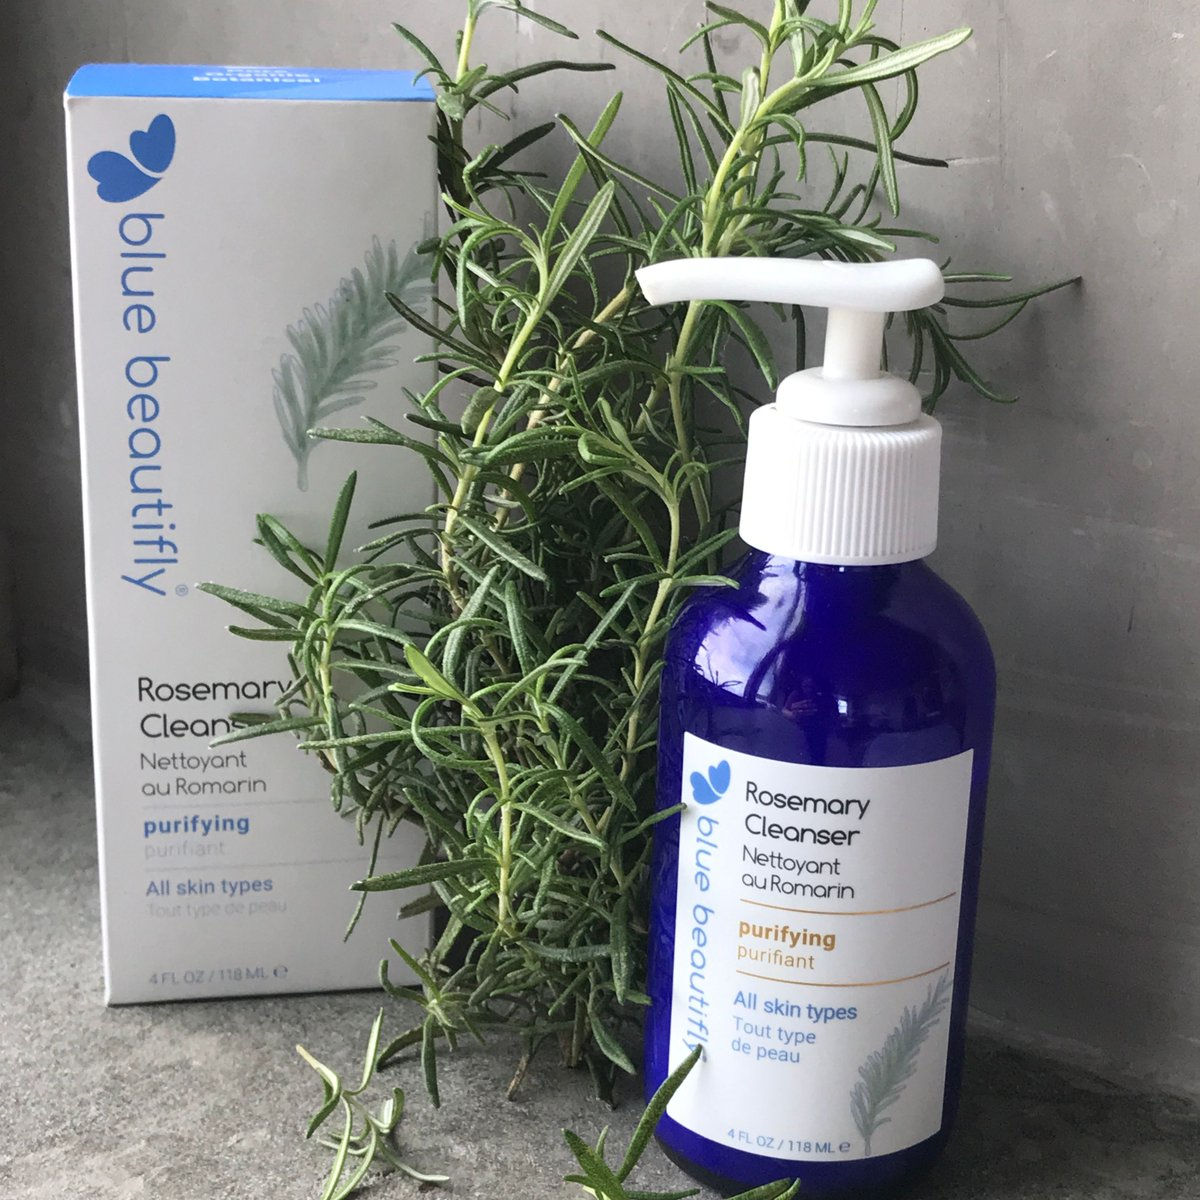 Rosemary Cleanser makes the skin feel soft and sparkling by hydrating and removing dirt and makeup gently, yet effectively.  See silky smooth and super sparkling skin with Rosemary Cleanser!  #Rosemary #Cleanser  #glowingskin #Innovativeskincare #Organicskincare #greenbeauty https://t.co/jjn7PLipMw